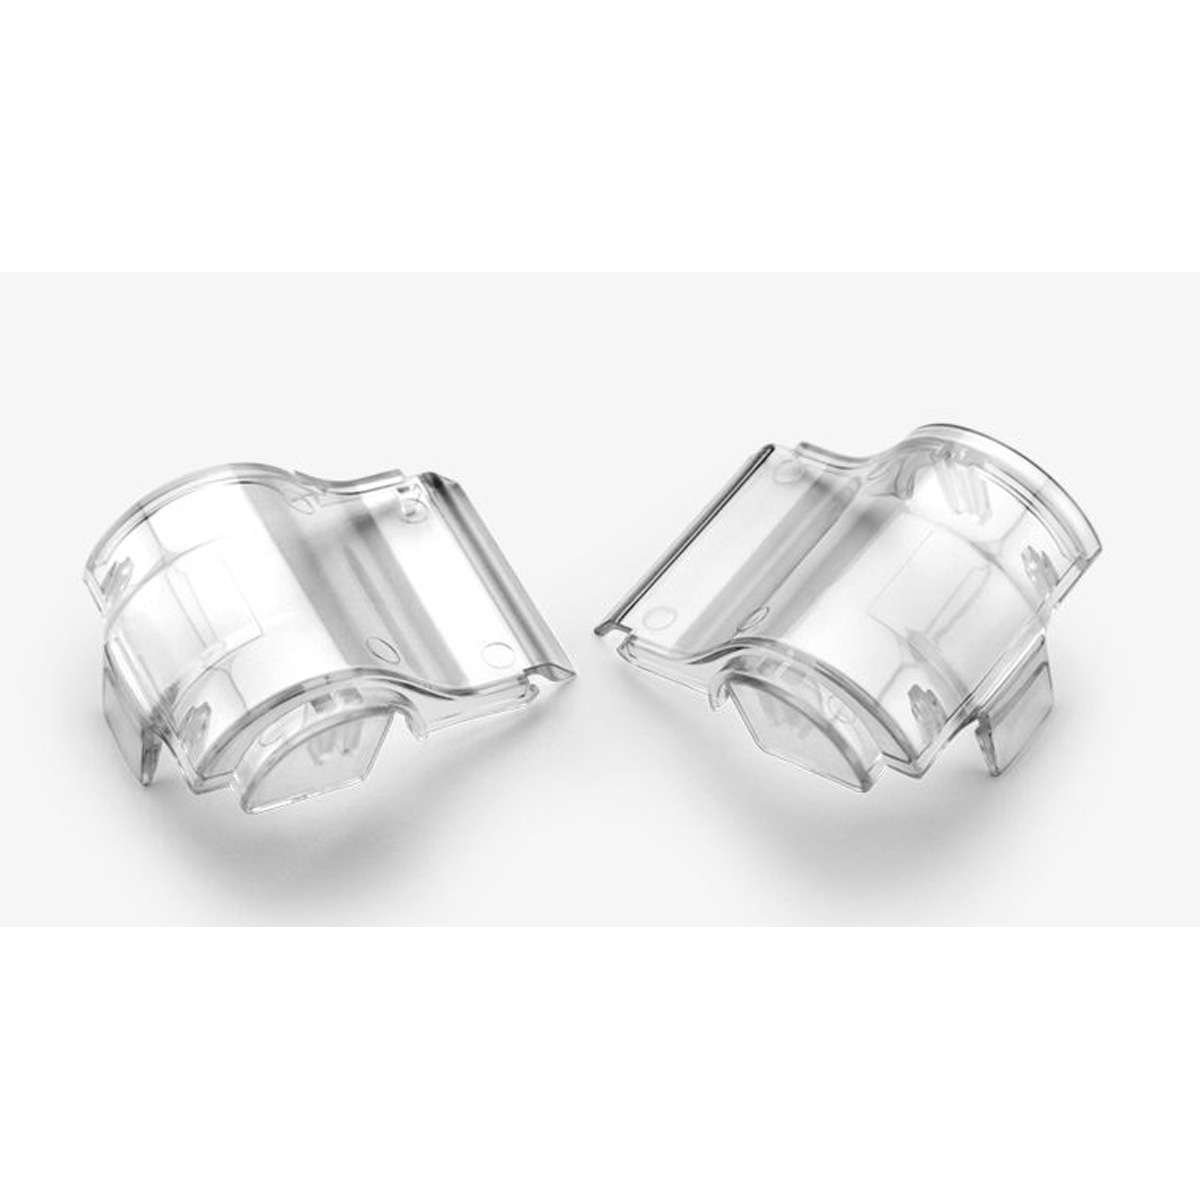 100/% 51024-010-02 Speedlab SVS Replacement Canister Lids-Pair Clear Lens Free Size